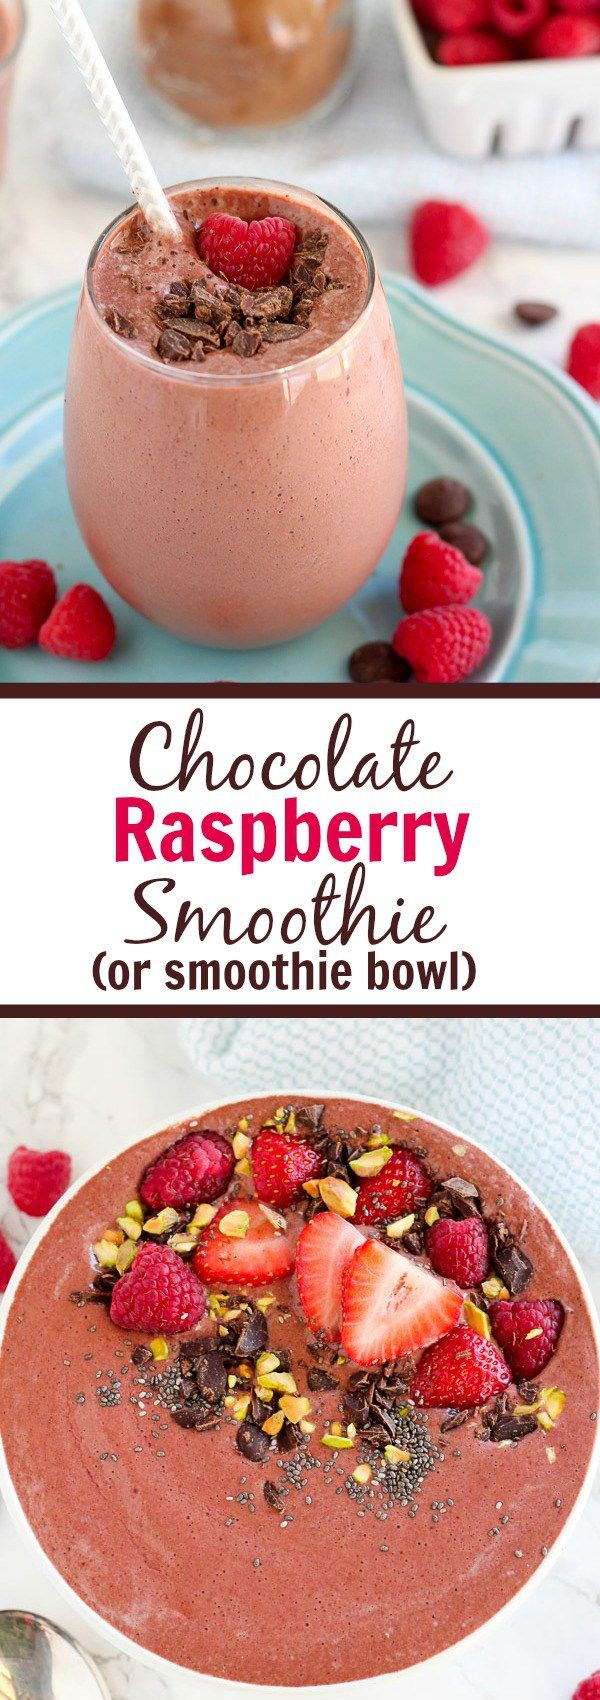 Chocolate Raspberry Smoothie - A lightly sweetened smoothie flavored with chocolate and raspberries. Filled with fruit, protein, and plenty of chocolate, this smoothie can be enjoyed for breakfast or as a healthy dessert.